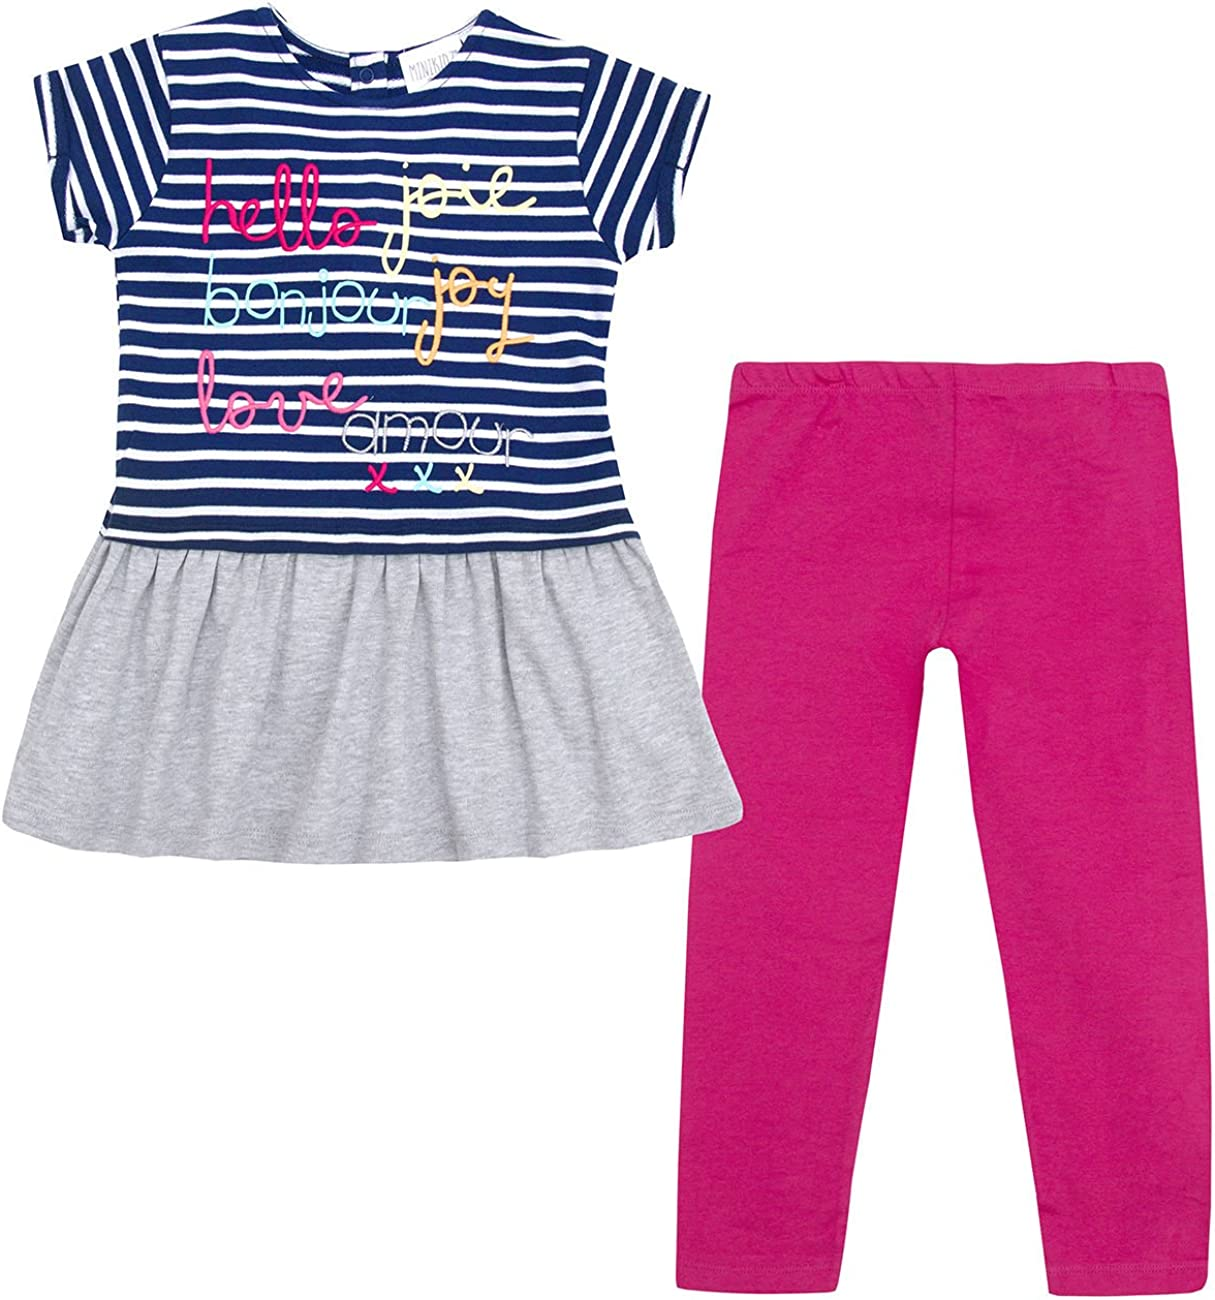 Ages 2 Up to 8 Years Minikidz Infant Girls Tunic /& Leggings Set Cotton Rich Outfit